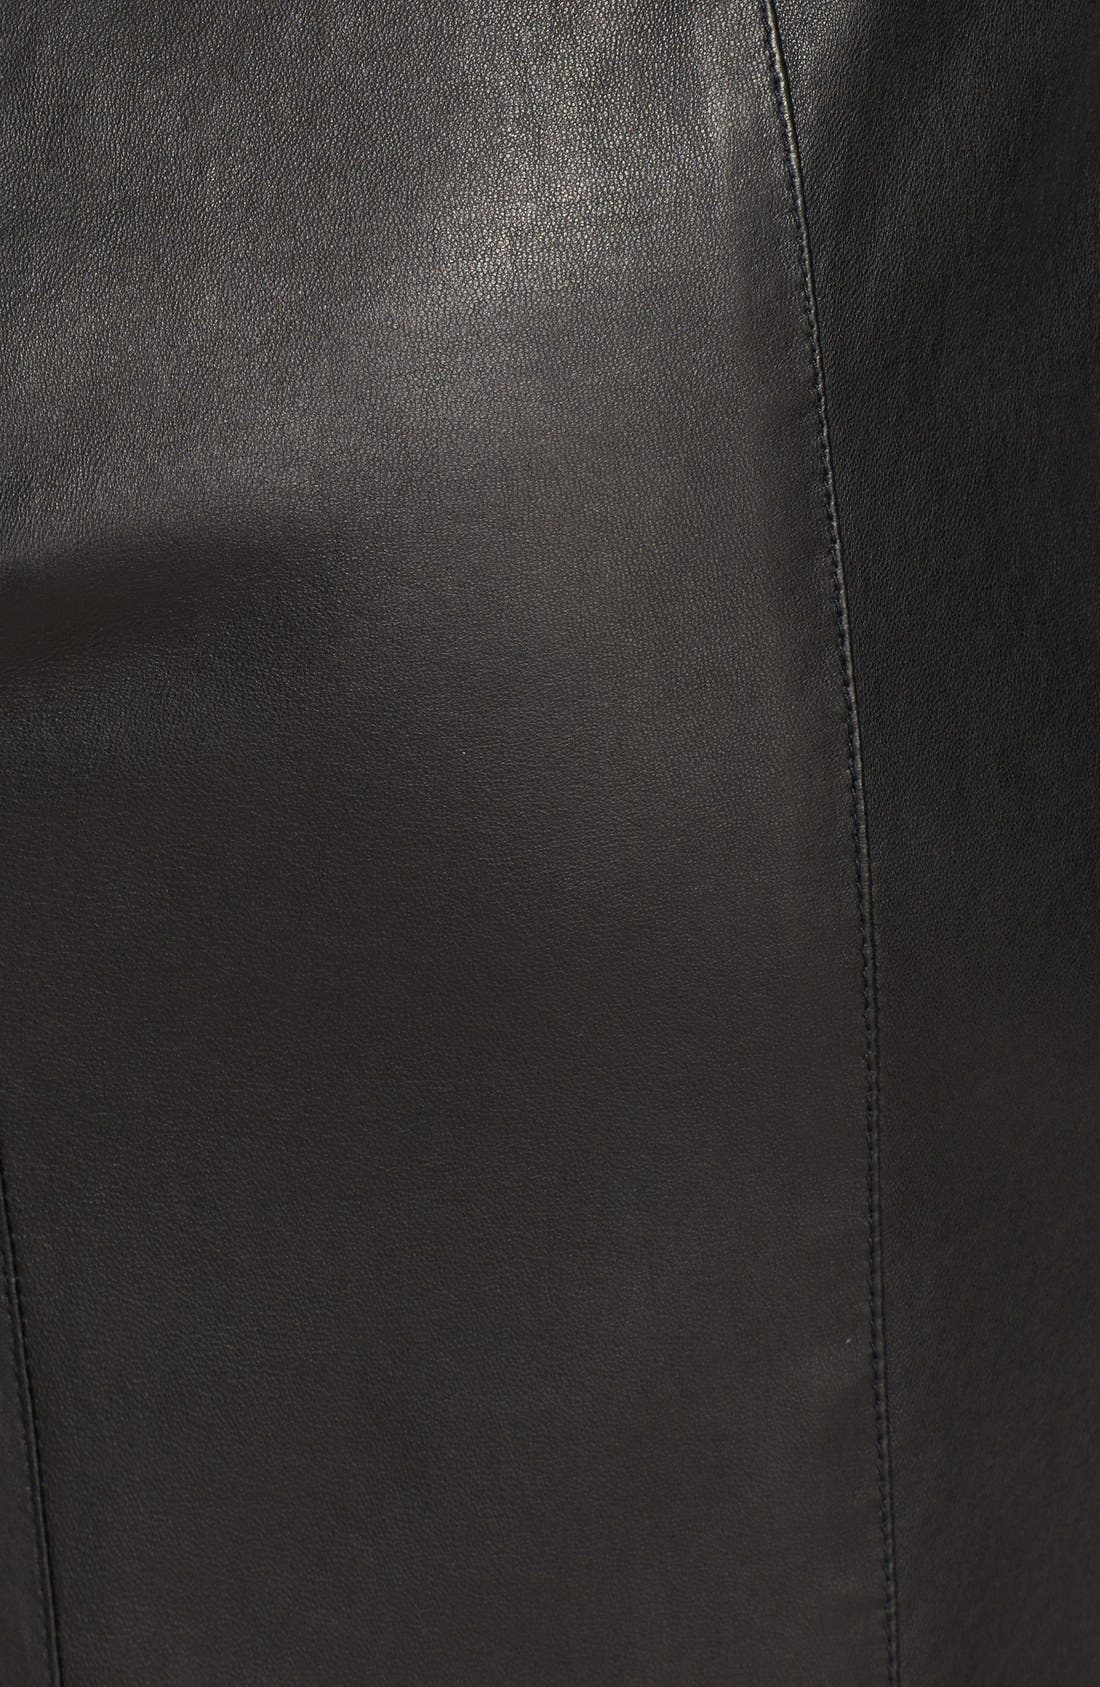 Alternate Image 3  - Burberry London Leather Pencil Skirt